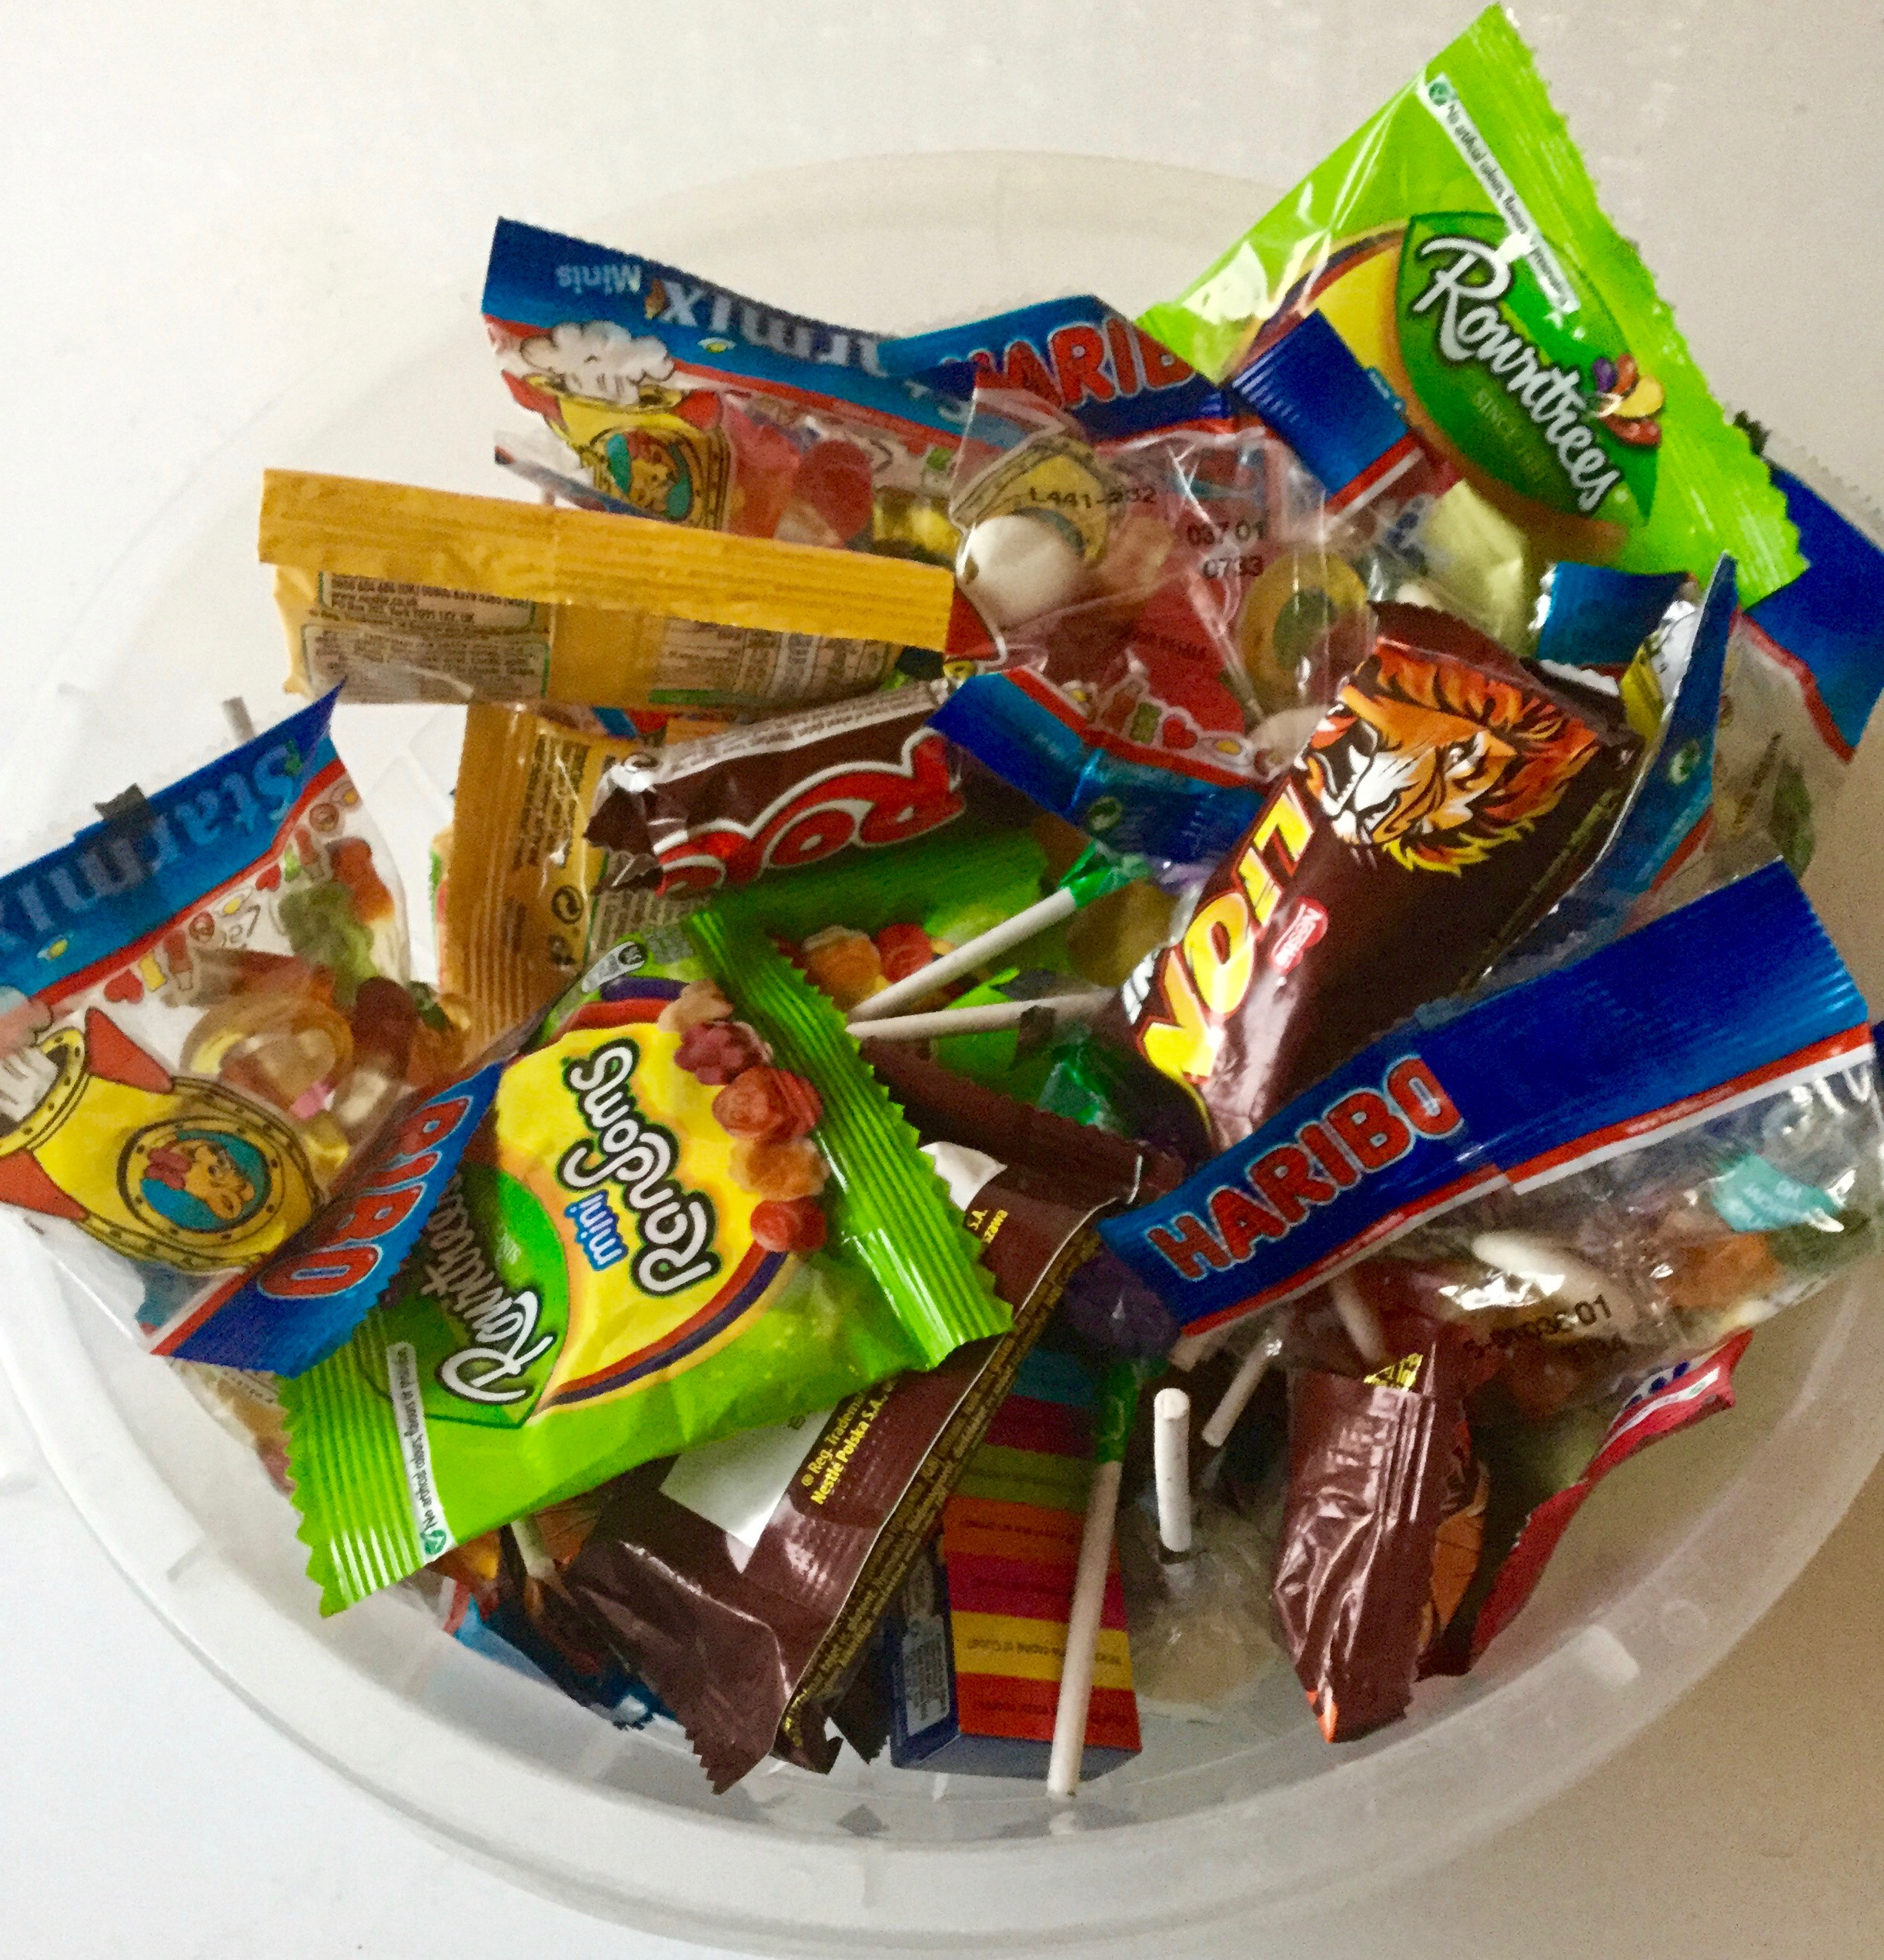 A bowl of various English sweets ready to be handed out at Halloween.